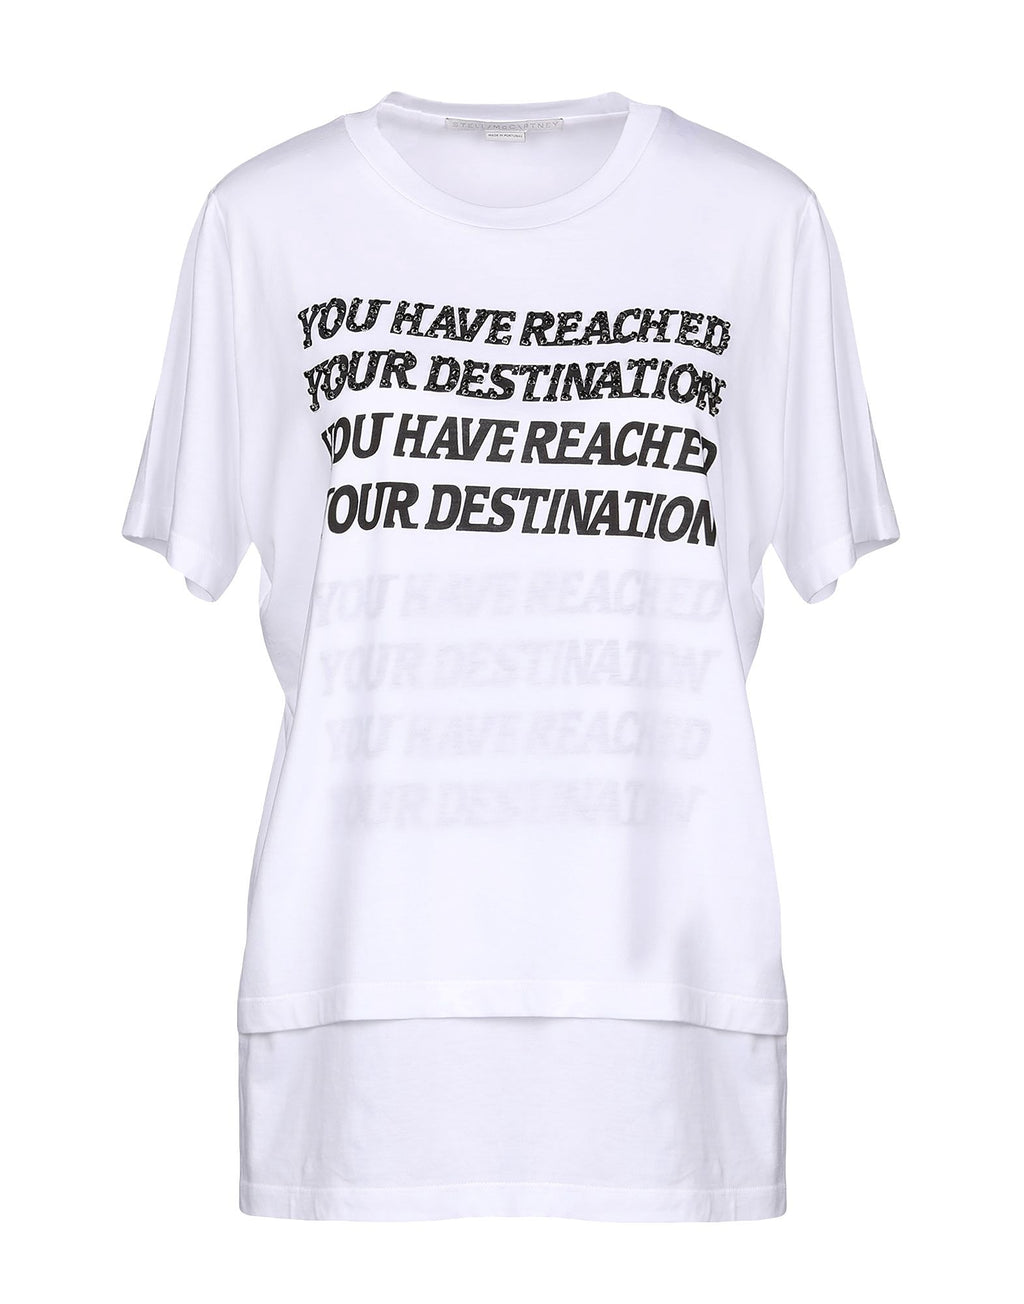 STELLA MCCARTNEY T-shirt  WHITE